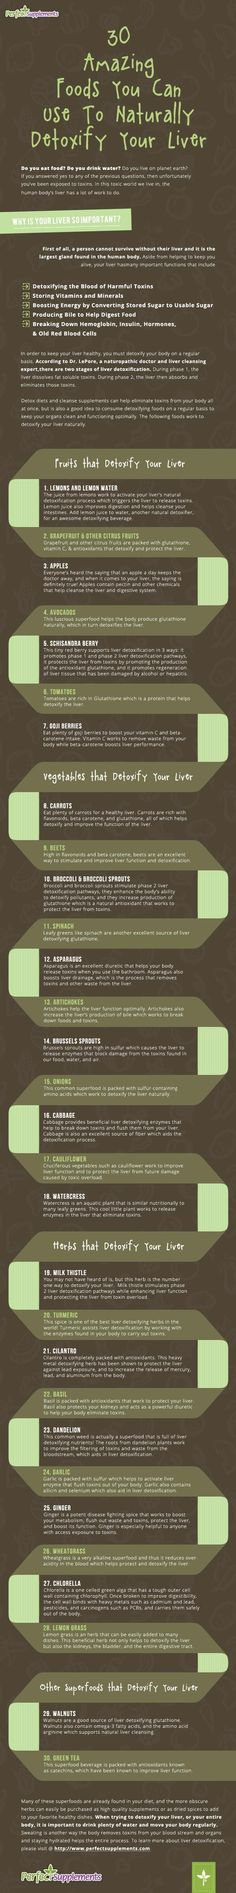 30 Foods That Naturally Detoxify Your Liver #Health #Infographic #SuperFoods #vitaminA #followback #vitaminD